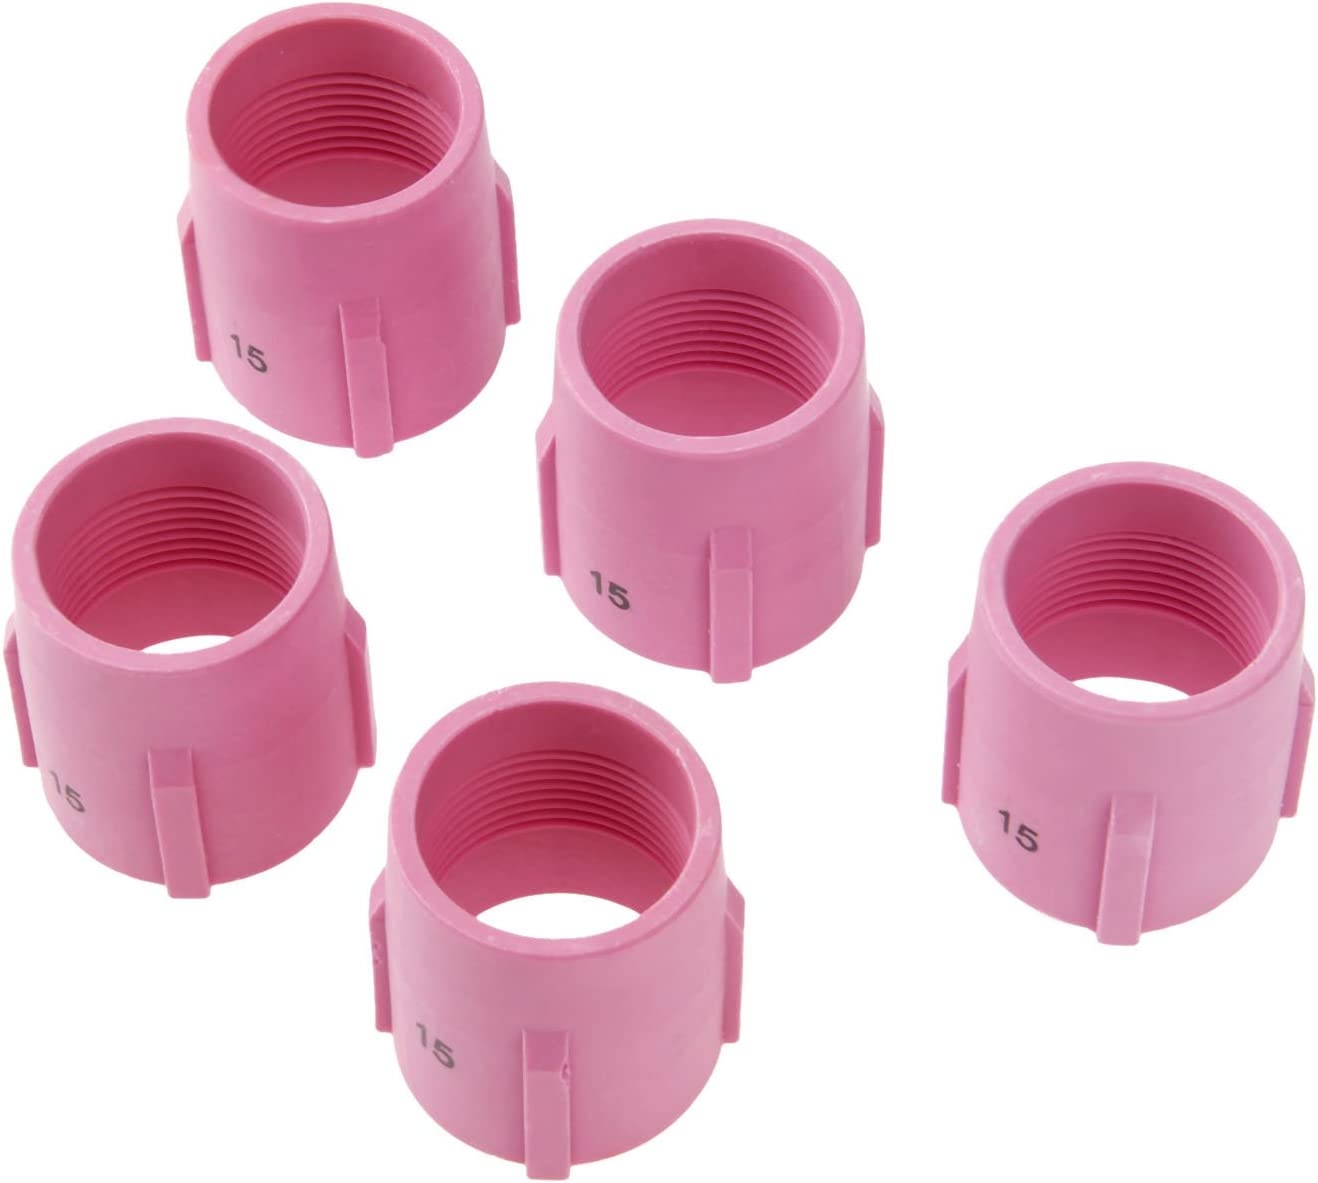 10-pk 53N89 #15 Large Ceramic Gas Lens Cup Nozzle for TIG Welding Torch